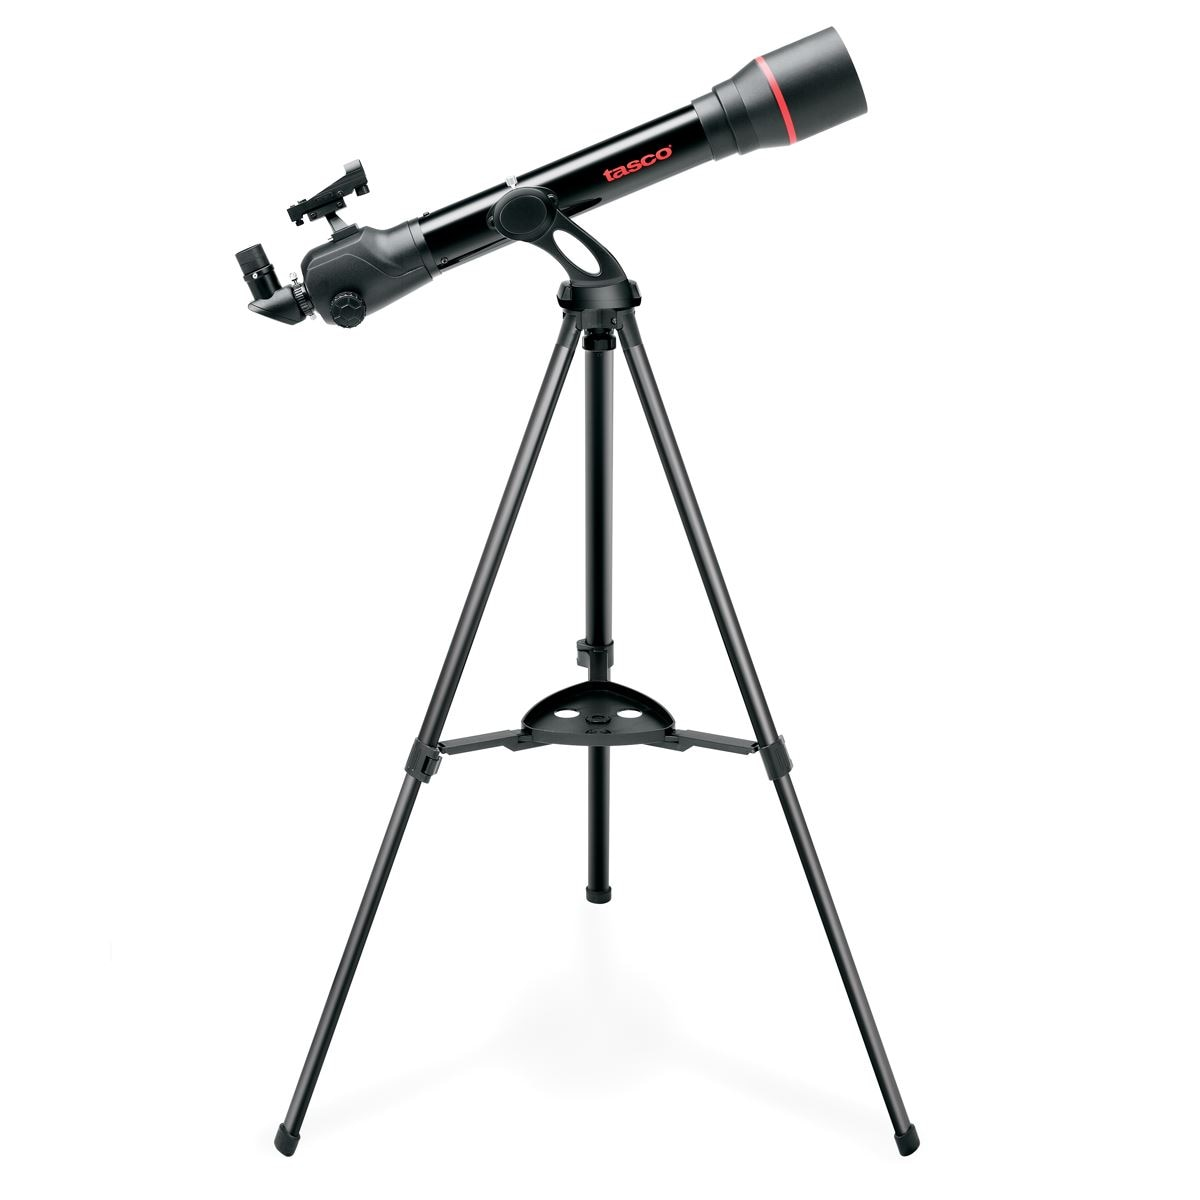 Telescopio Tasco Spacestation 525 x 6